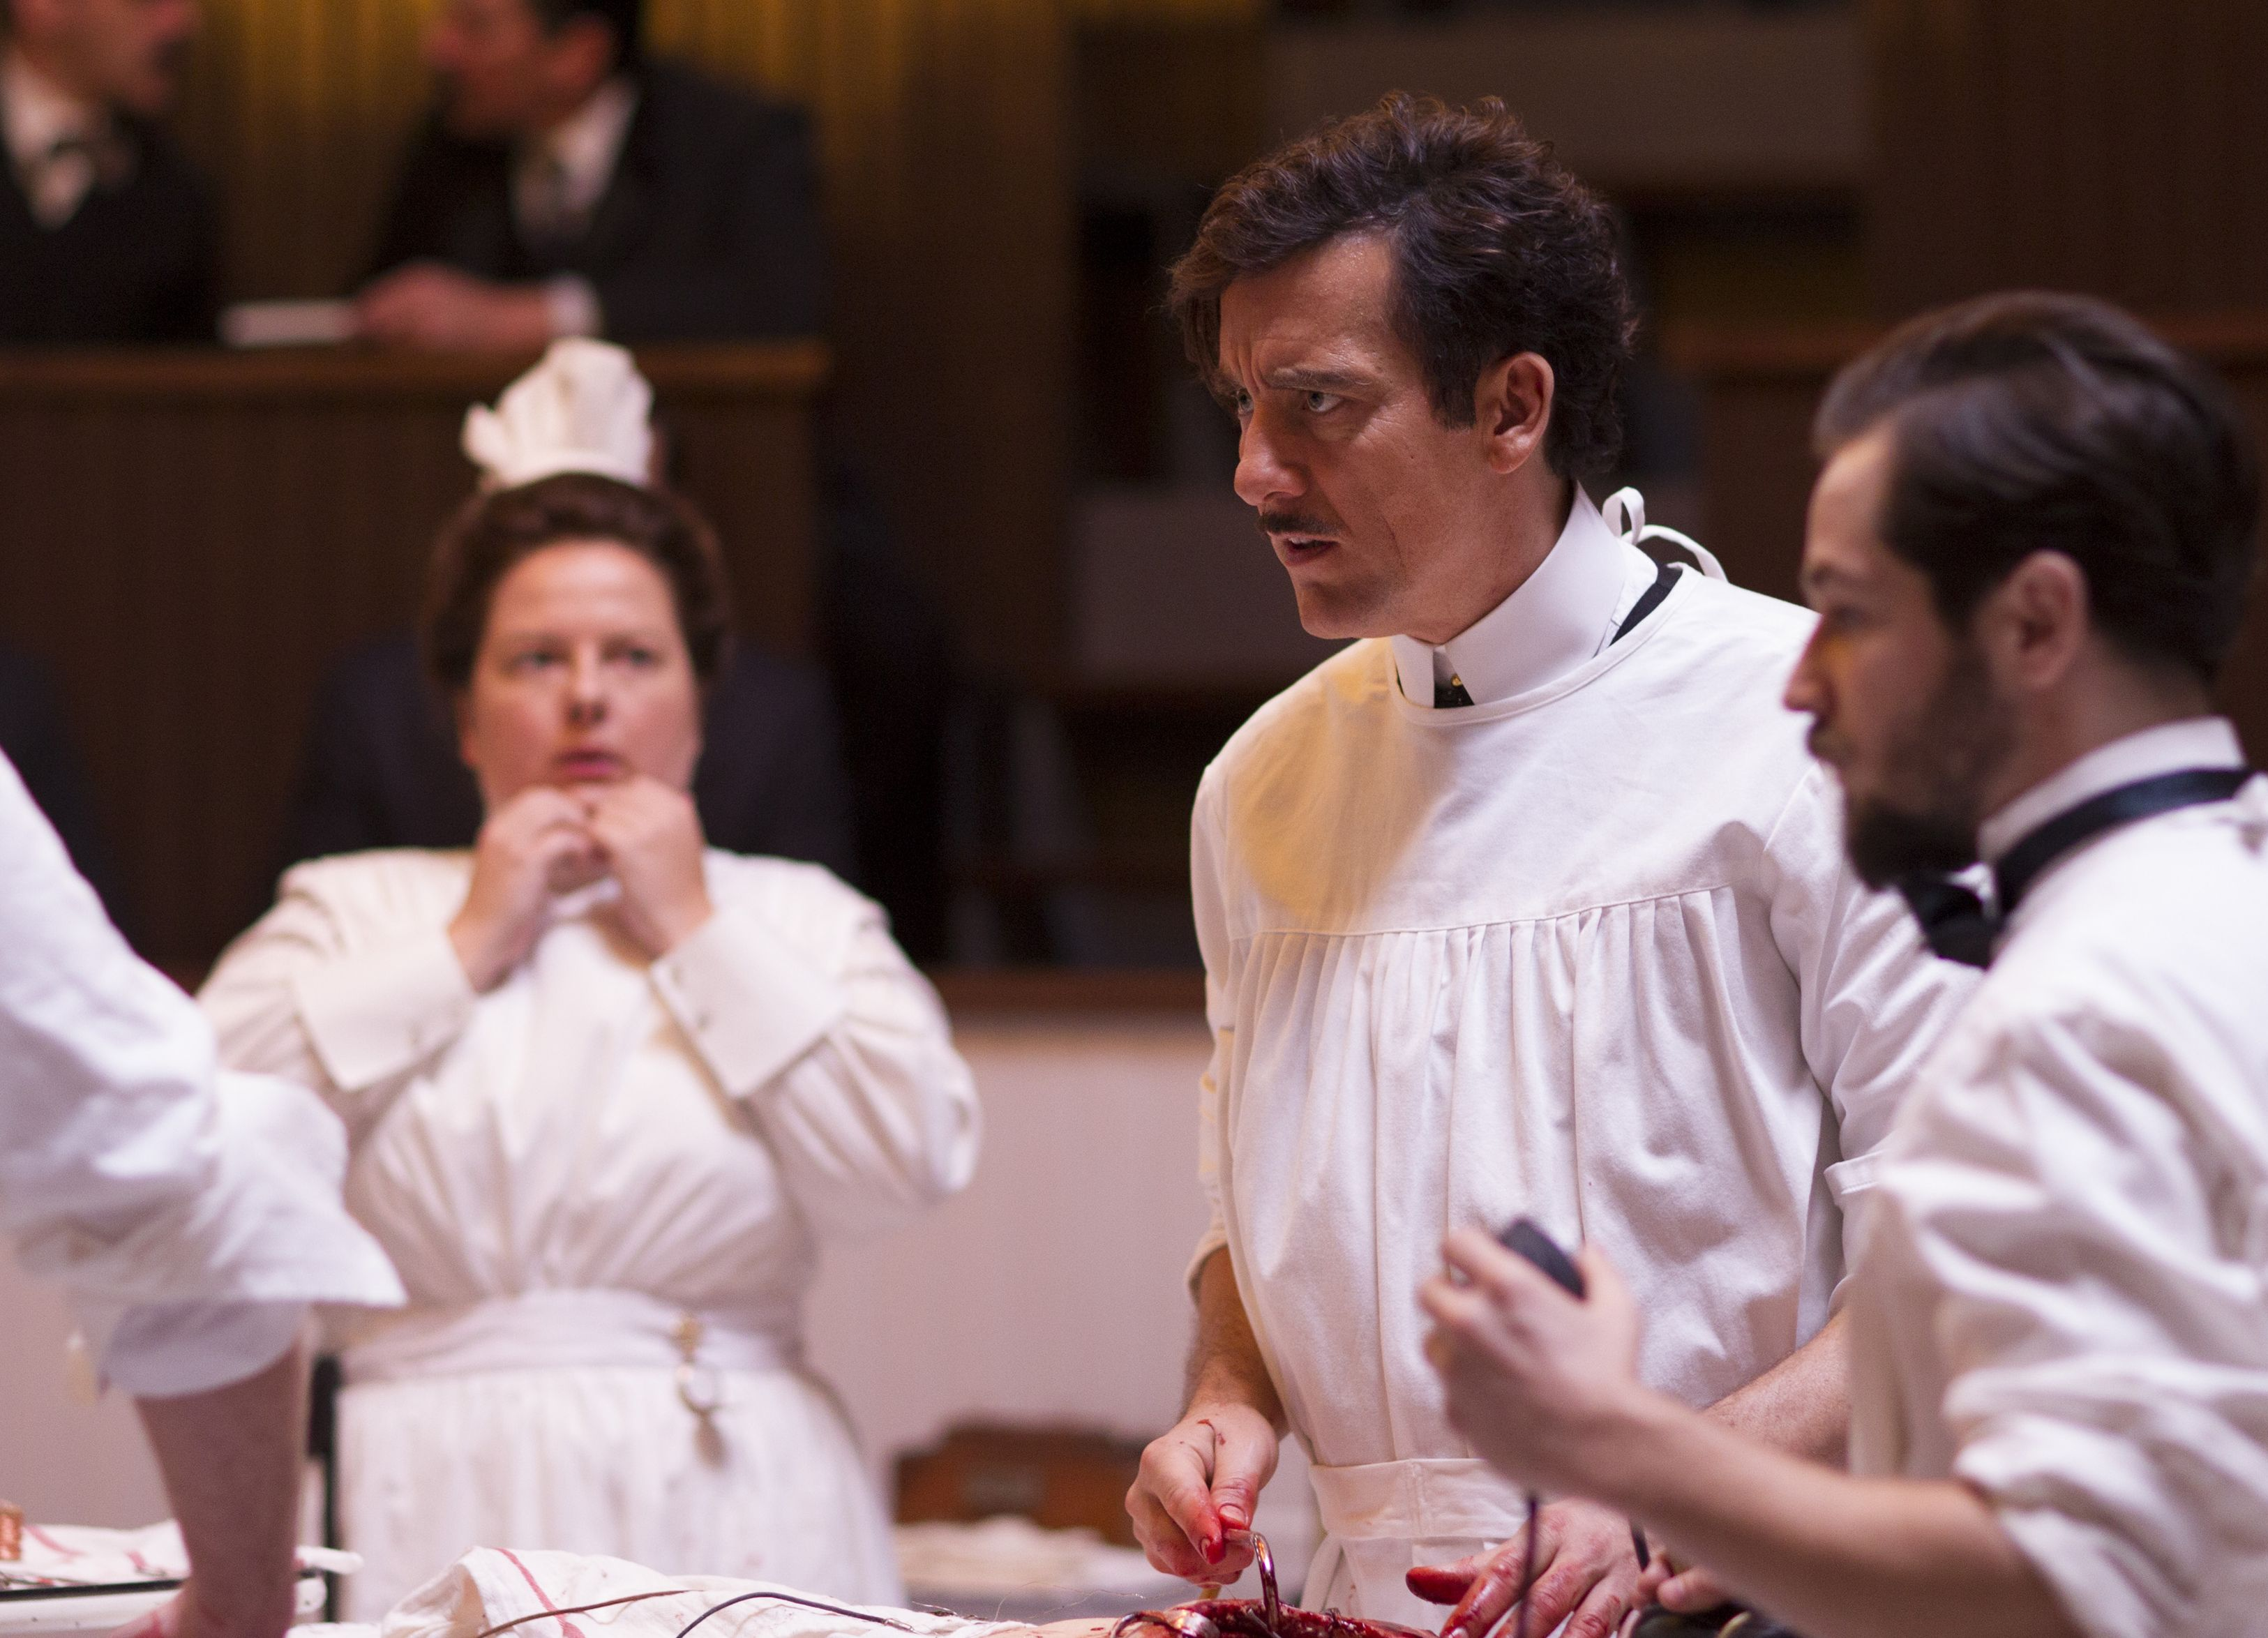 Clive Owen angry in The Knick